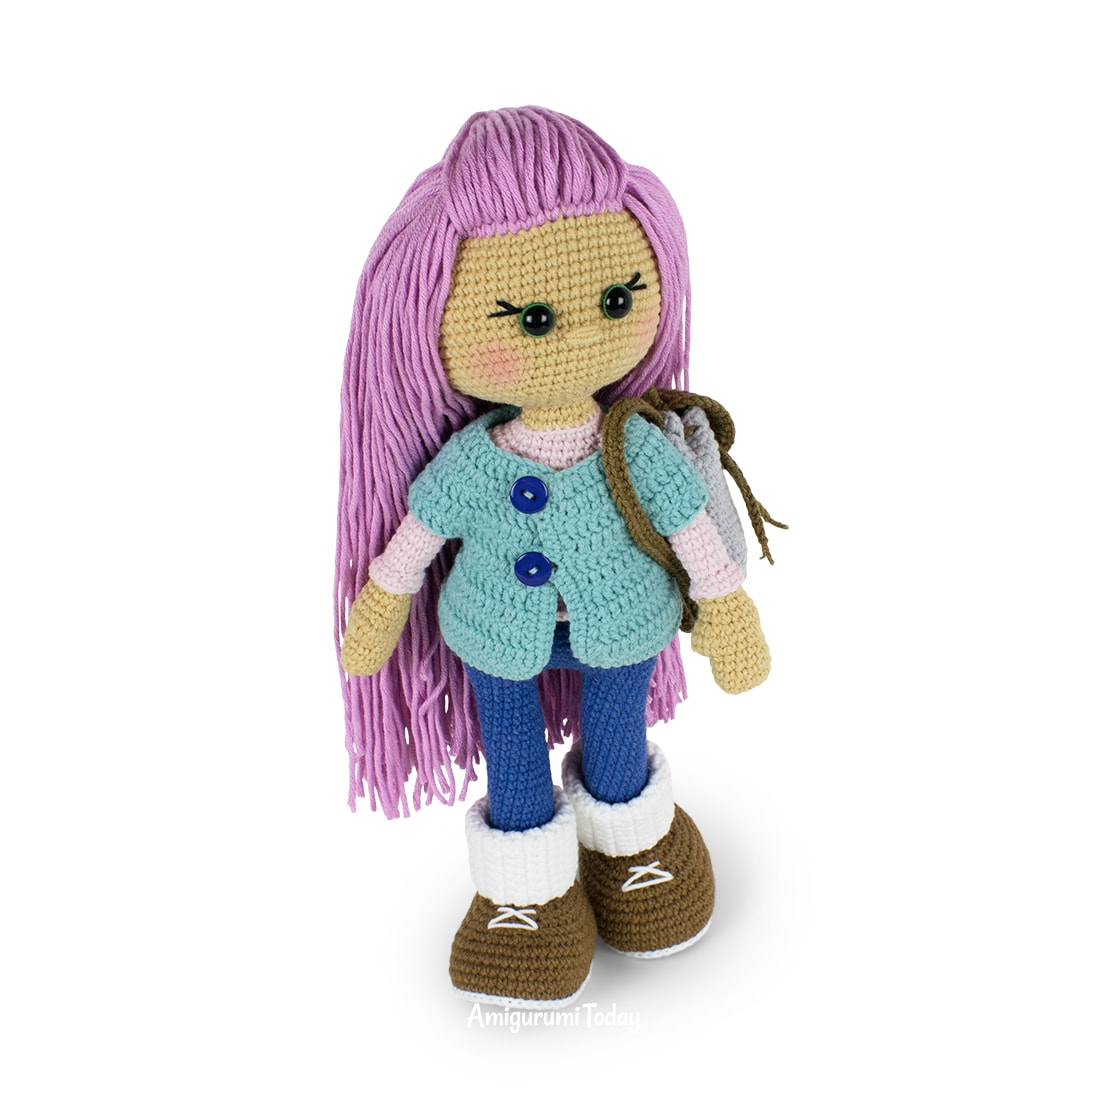 Molly Doll crochet pattern designed by Amigurumi Today